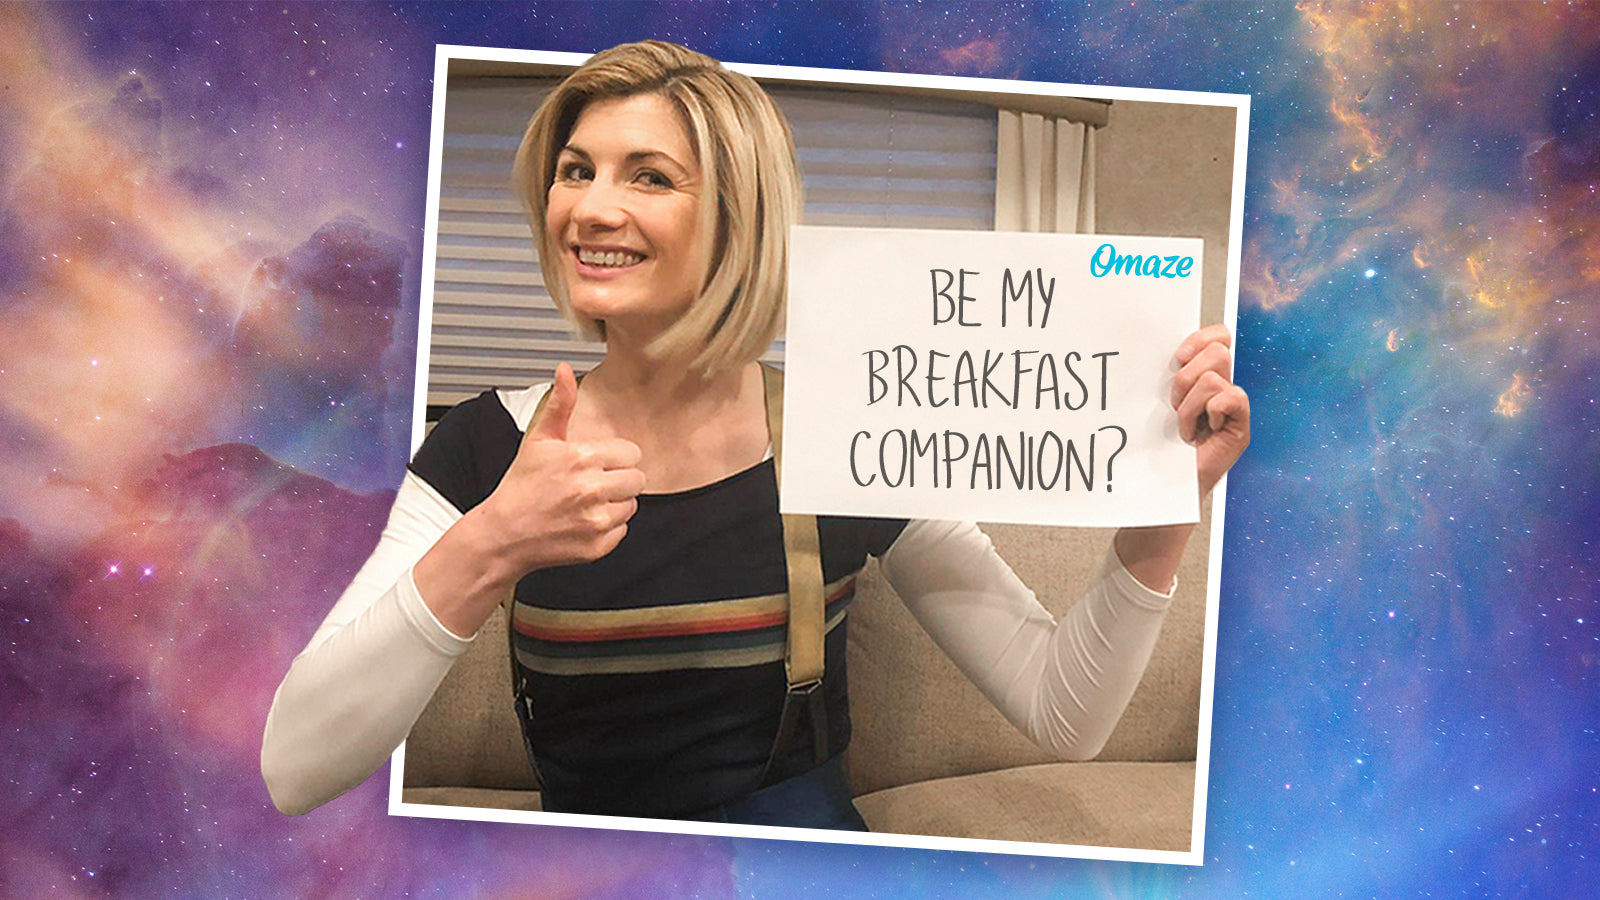 Join Jodie Whittaker For Breakfast On The Doctor Who Set